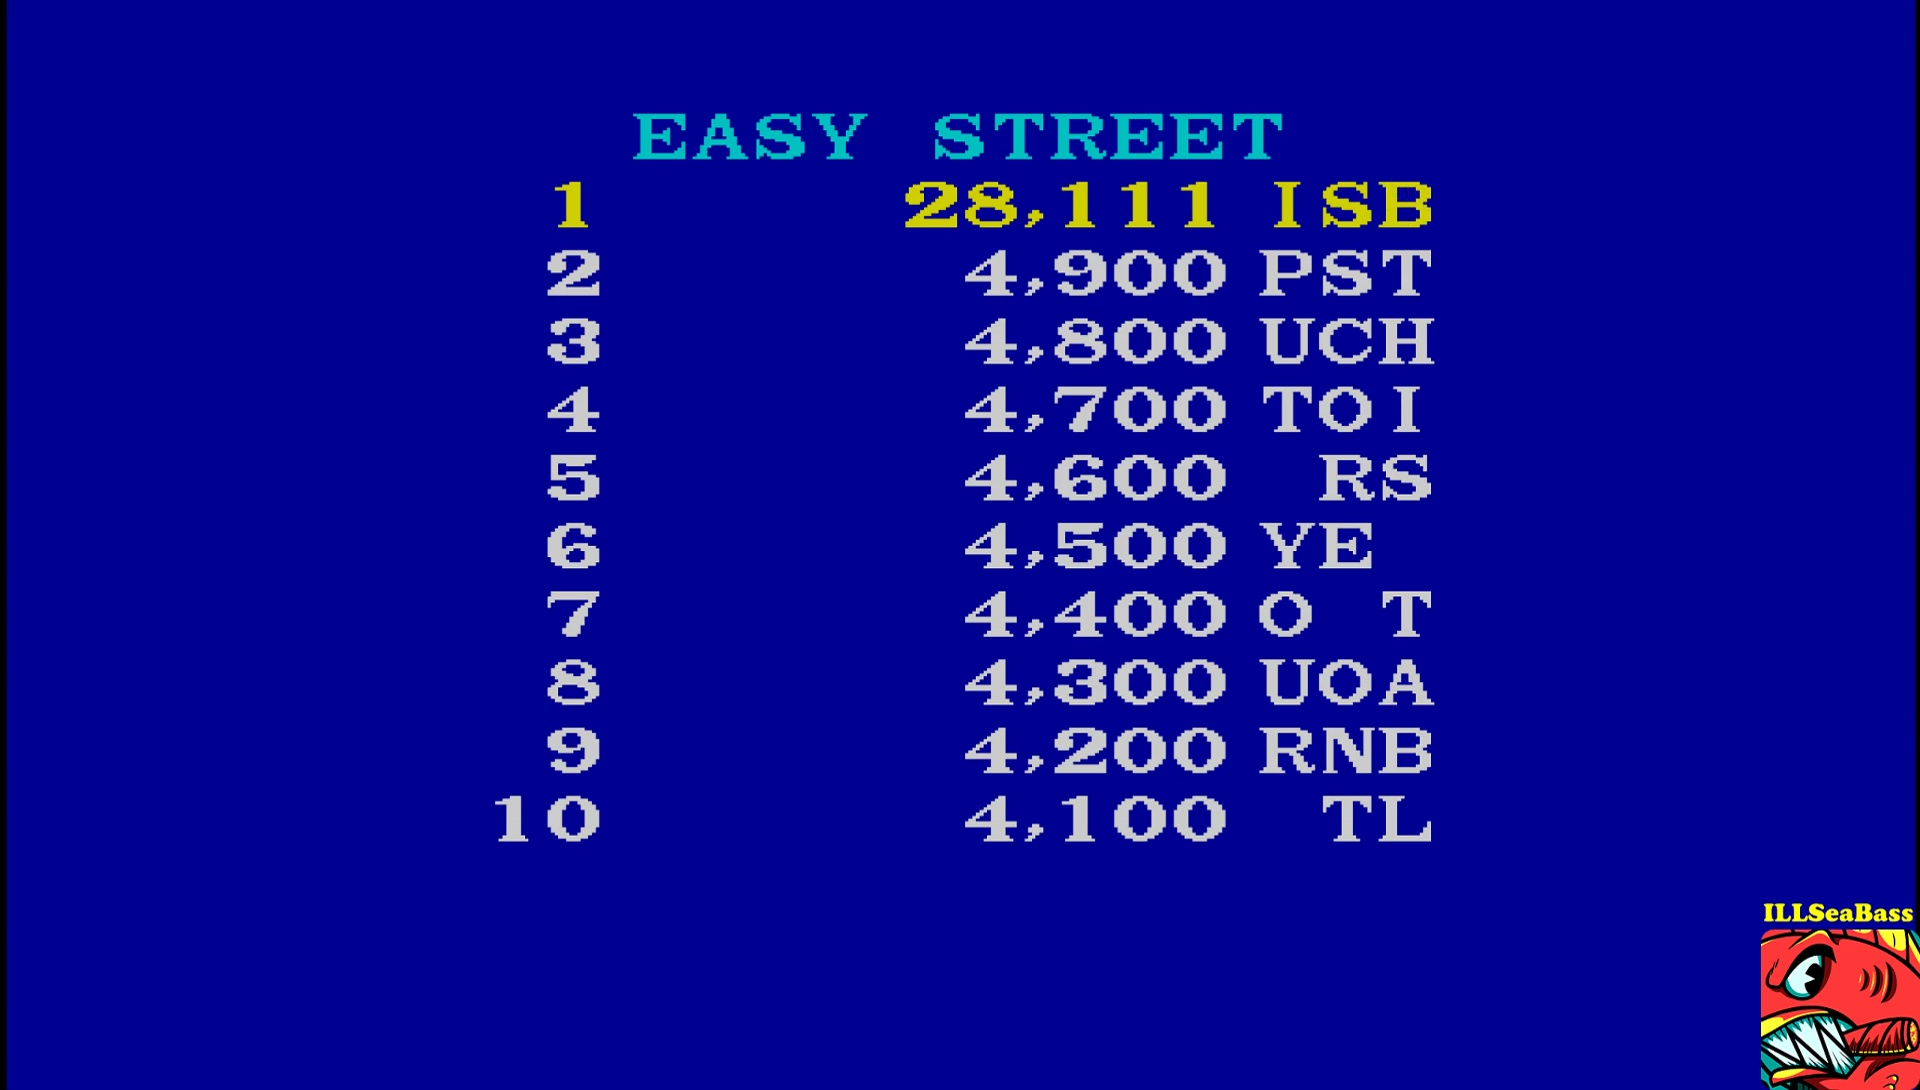 ILLSeaBass: Midway Arcade Treasures: Extended Play: Paperboy (PSP Emulated) 28,111 points on 2017-05-22 13:29:33